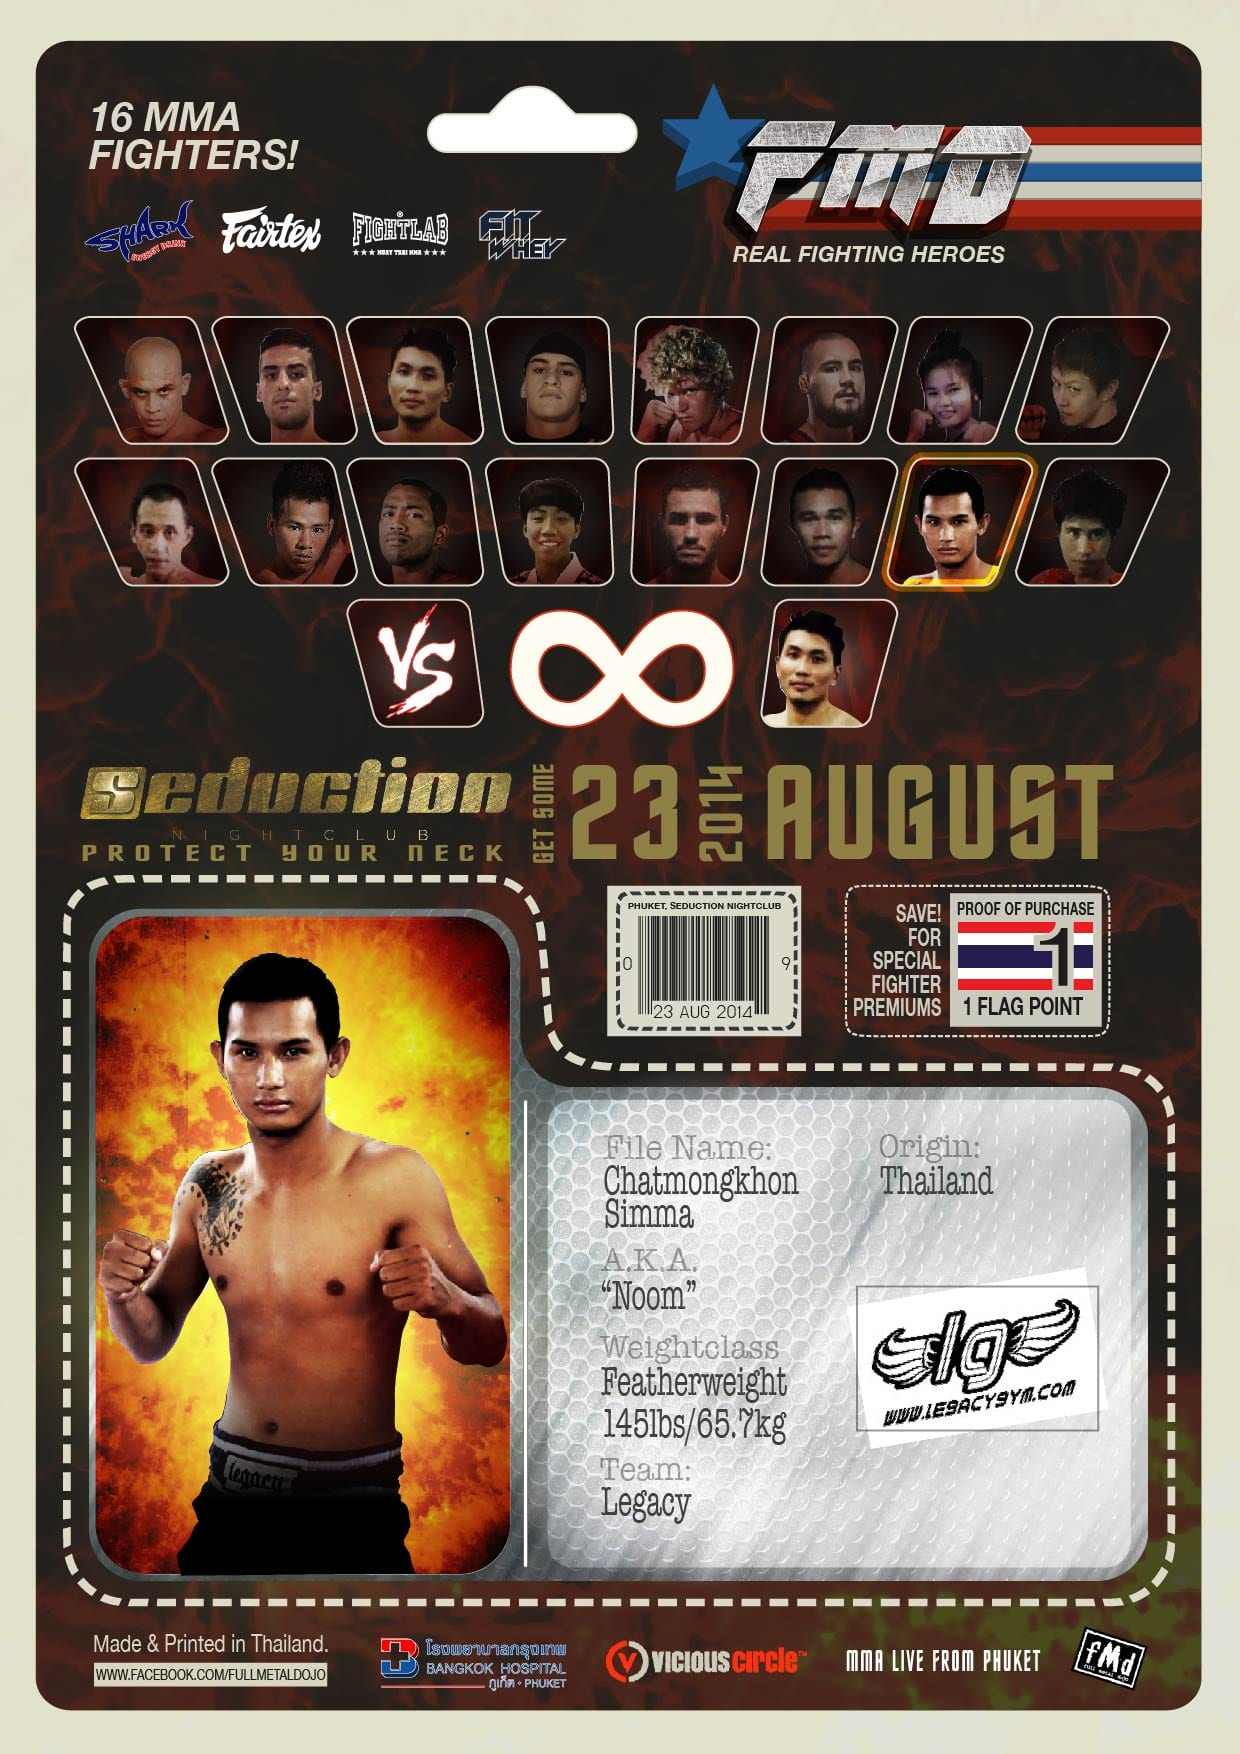 Charmongkhon 'Noom' Simma FMD2 MMA Fighter